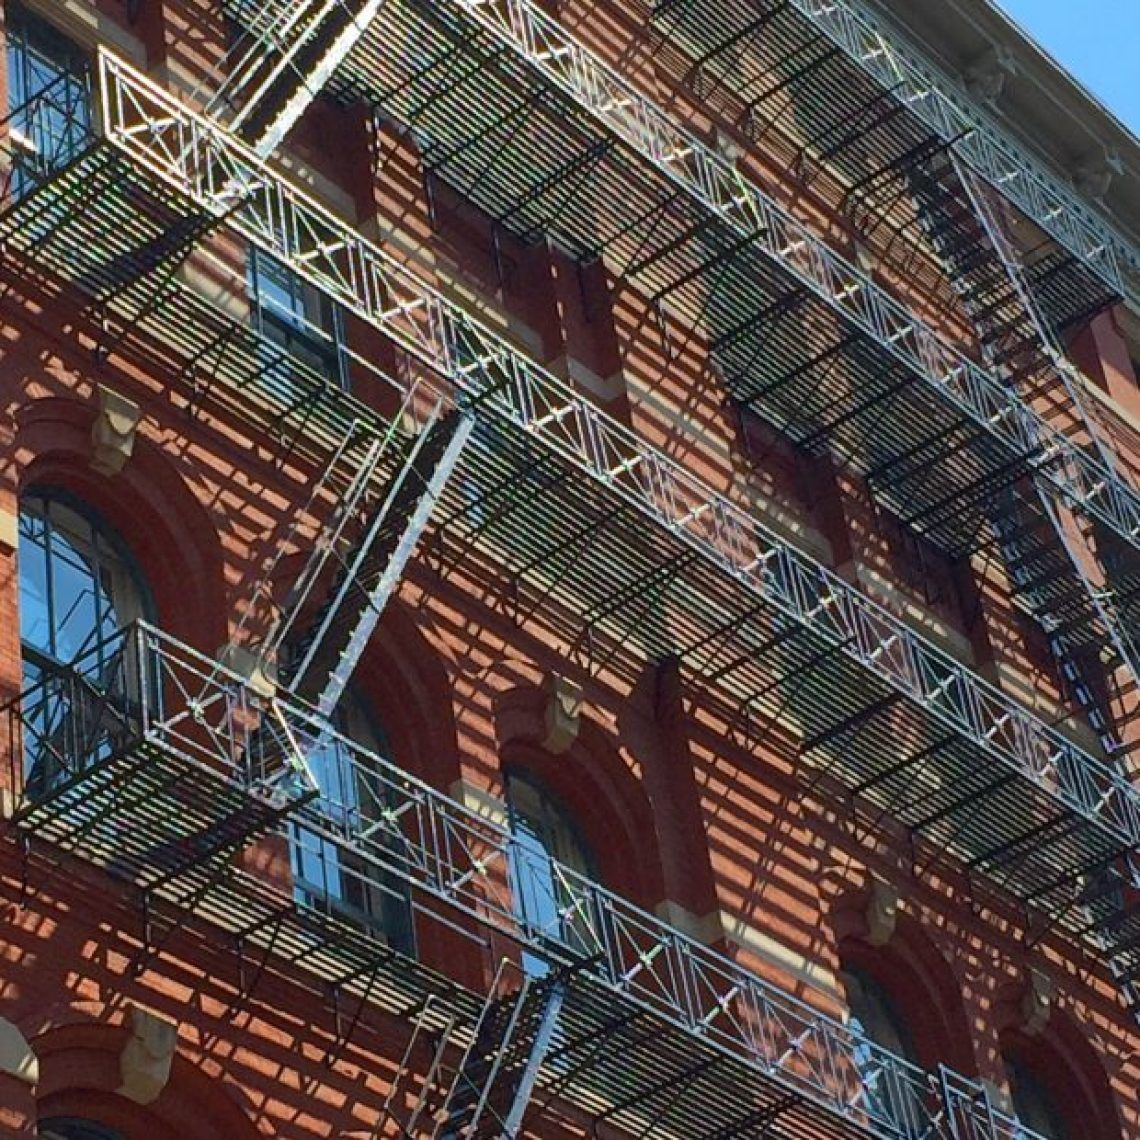 Soho New York fire escape shadows